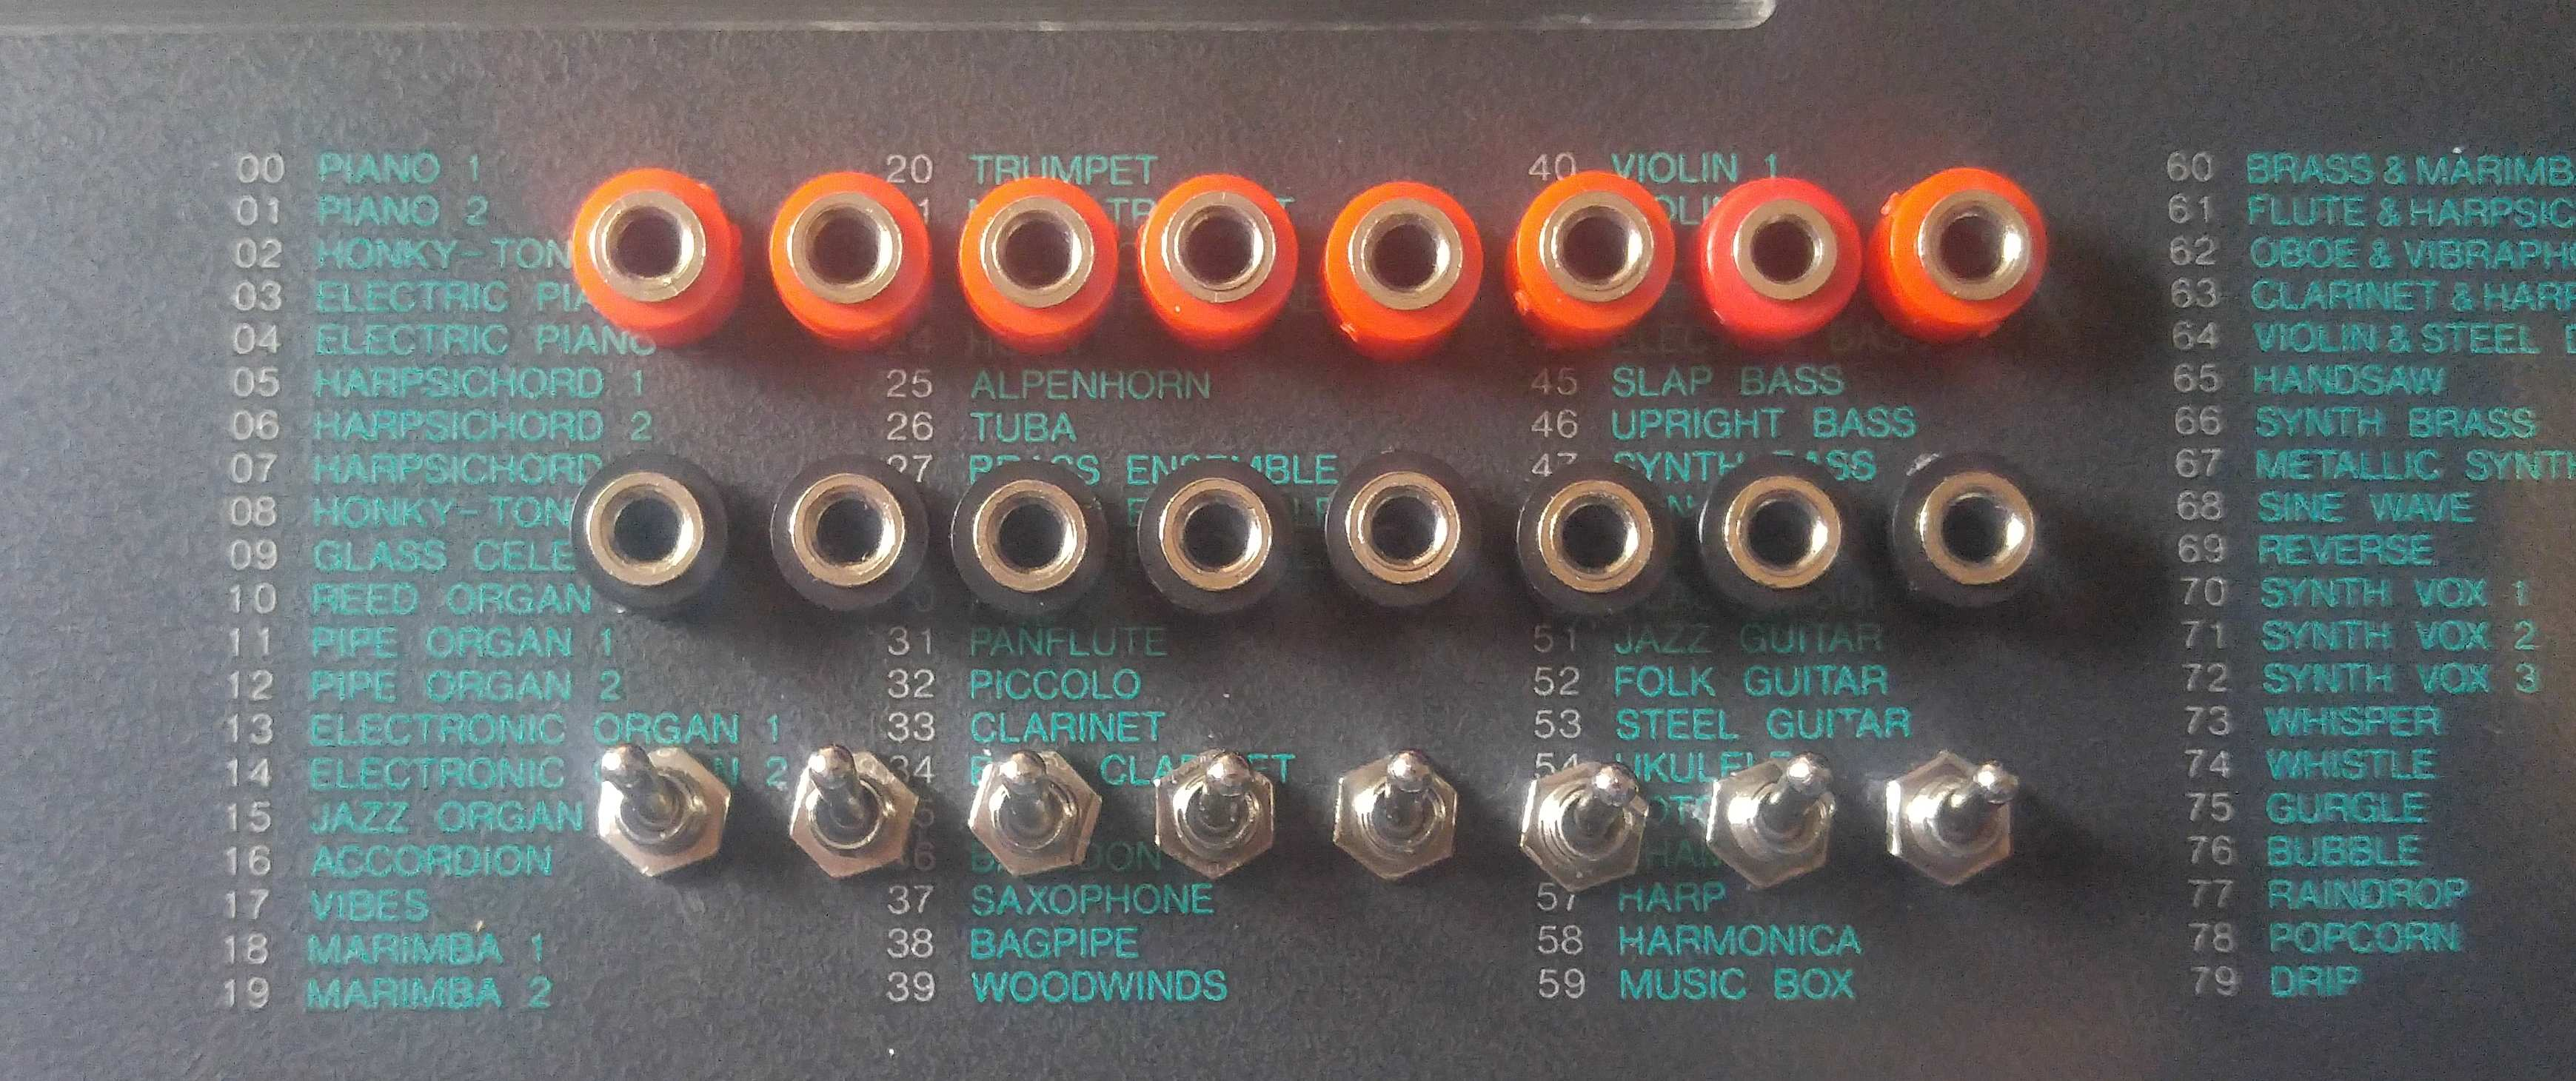 Data Patch Bay Yamaha Psr 6 Sam Vs Sound Circuit Bending Tutorial When You Are Getting Started With This It Can Be A Little Intimidating Will Crash And Spew Loud Garbled Noise